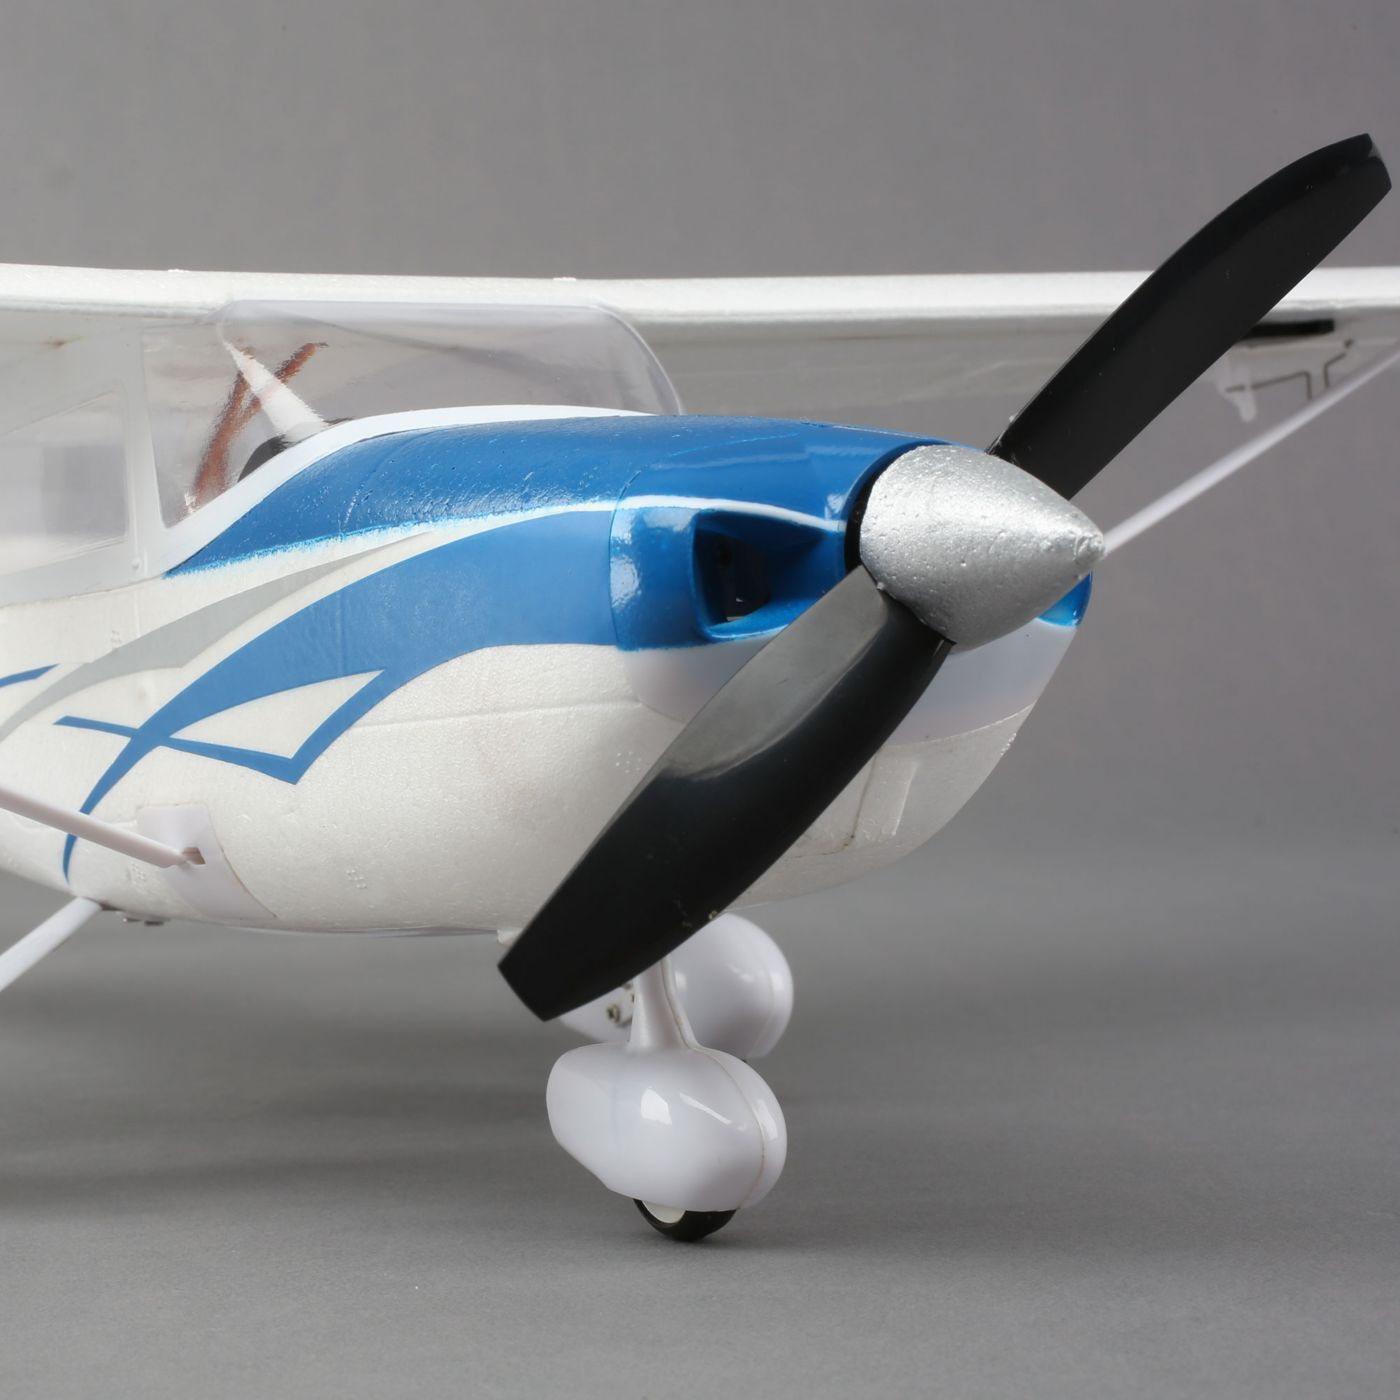 Umx Cessna 182 Bnf Basic With As3x Horizonhobby Parts Aircraft Accessories